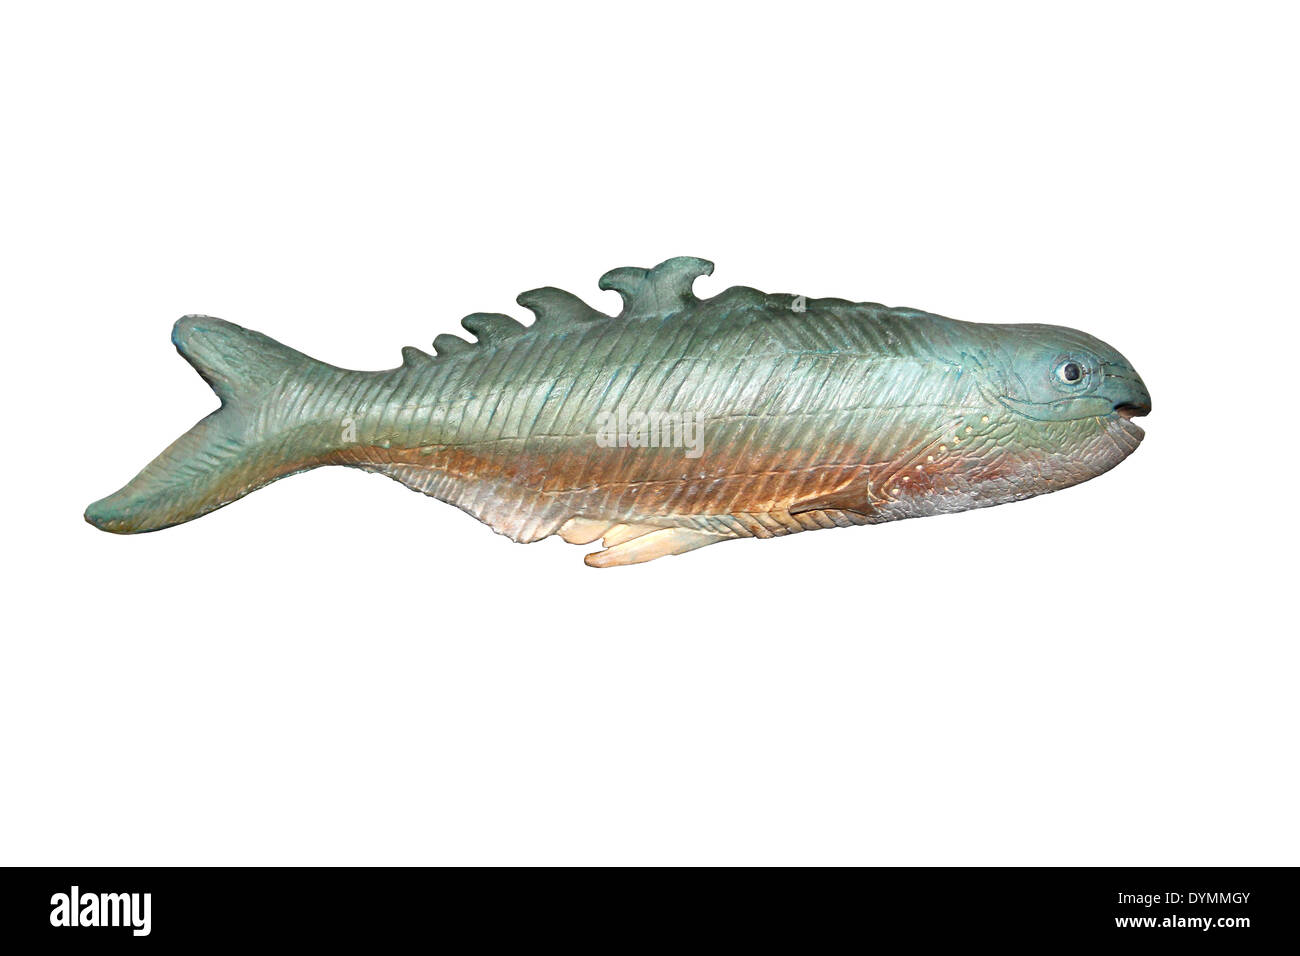 Model Of Jawless Fish Birkenia elegans - an extinct anaspid fish from the Late Silurian to the Early Devonian of Europe - Stock Image